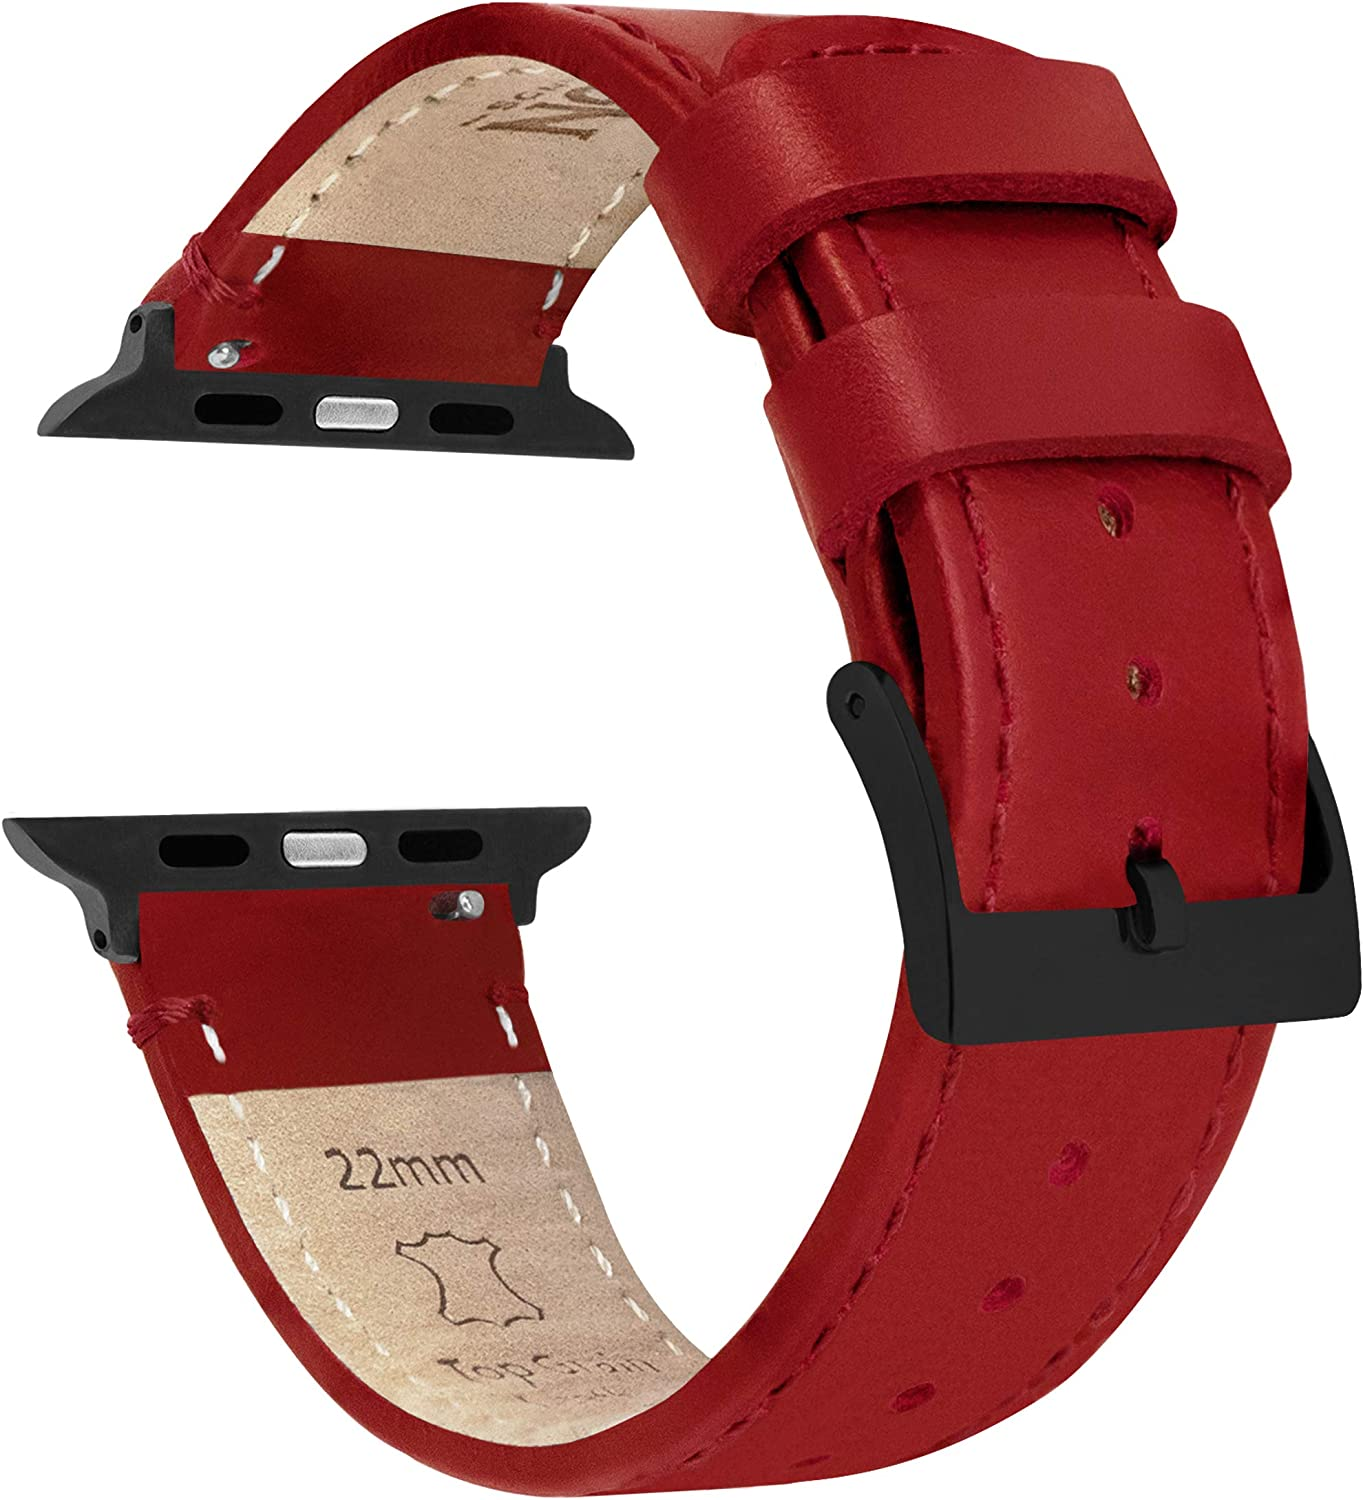 42mm/44mm Crimson Red - Barton Top Grain Leather Watch Bands Compatible with All Apple Watch Models - Black Hardware